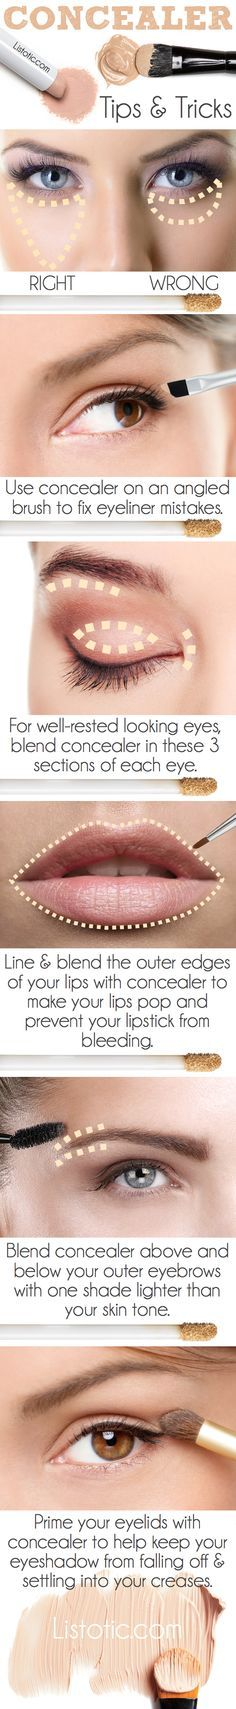 BangingStyle: Knowing How To Use Your Concealer